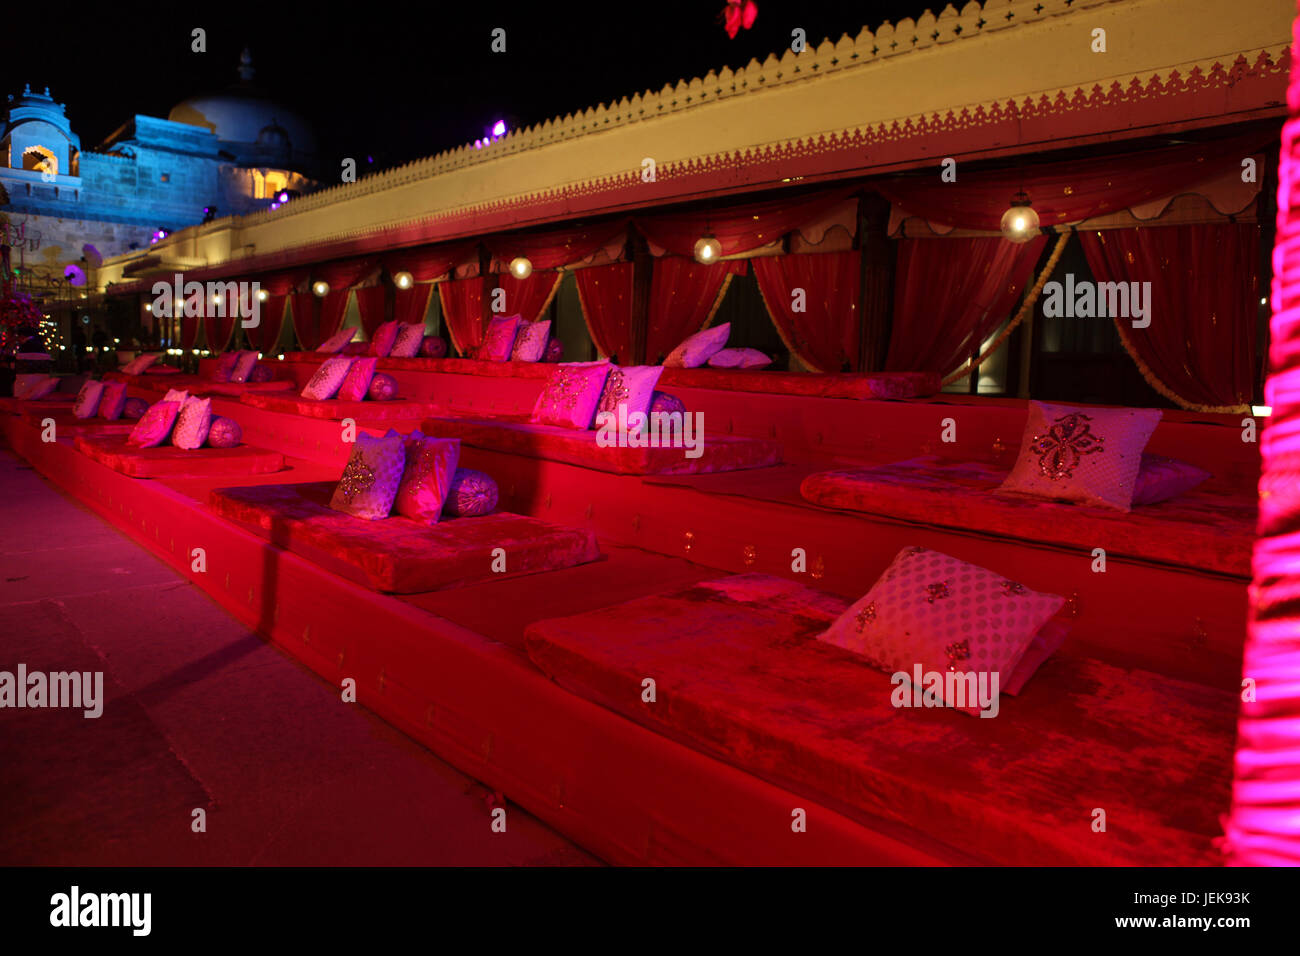 Wedding decorations amer fort jaipur rajasthan india asia stock wedding decorations amer fort jaipur rajasthan india asia junglespirit Images